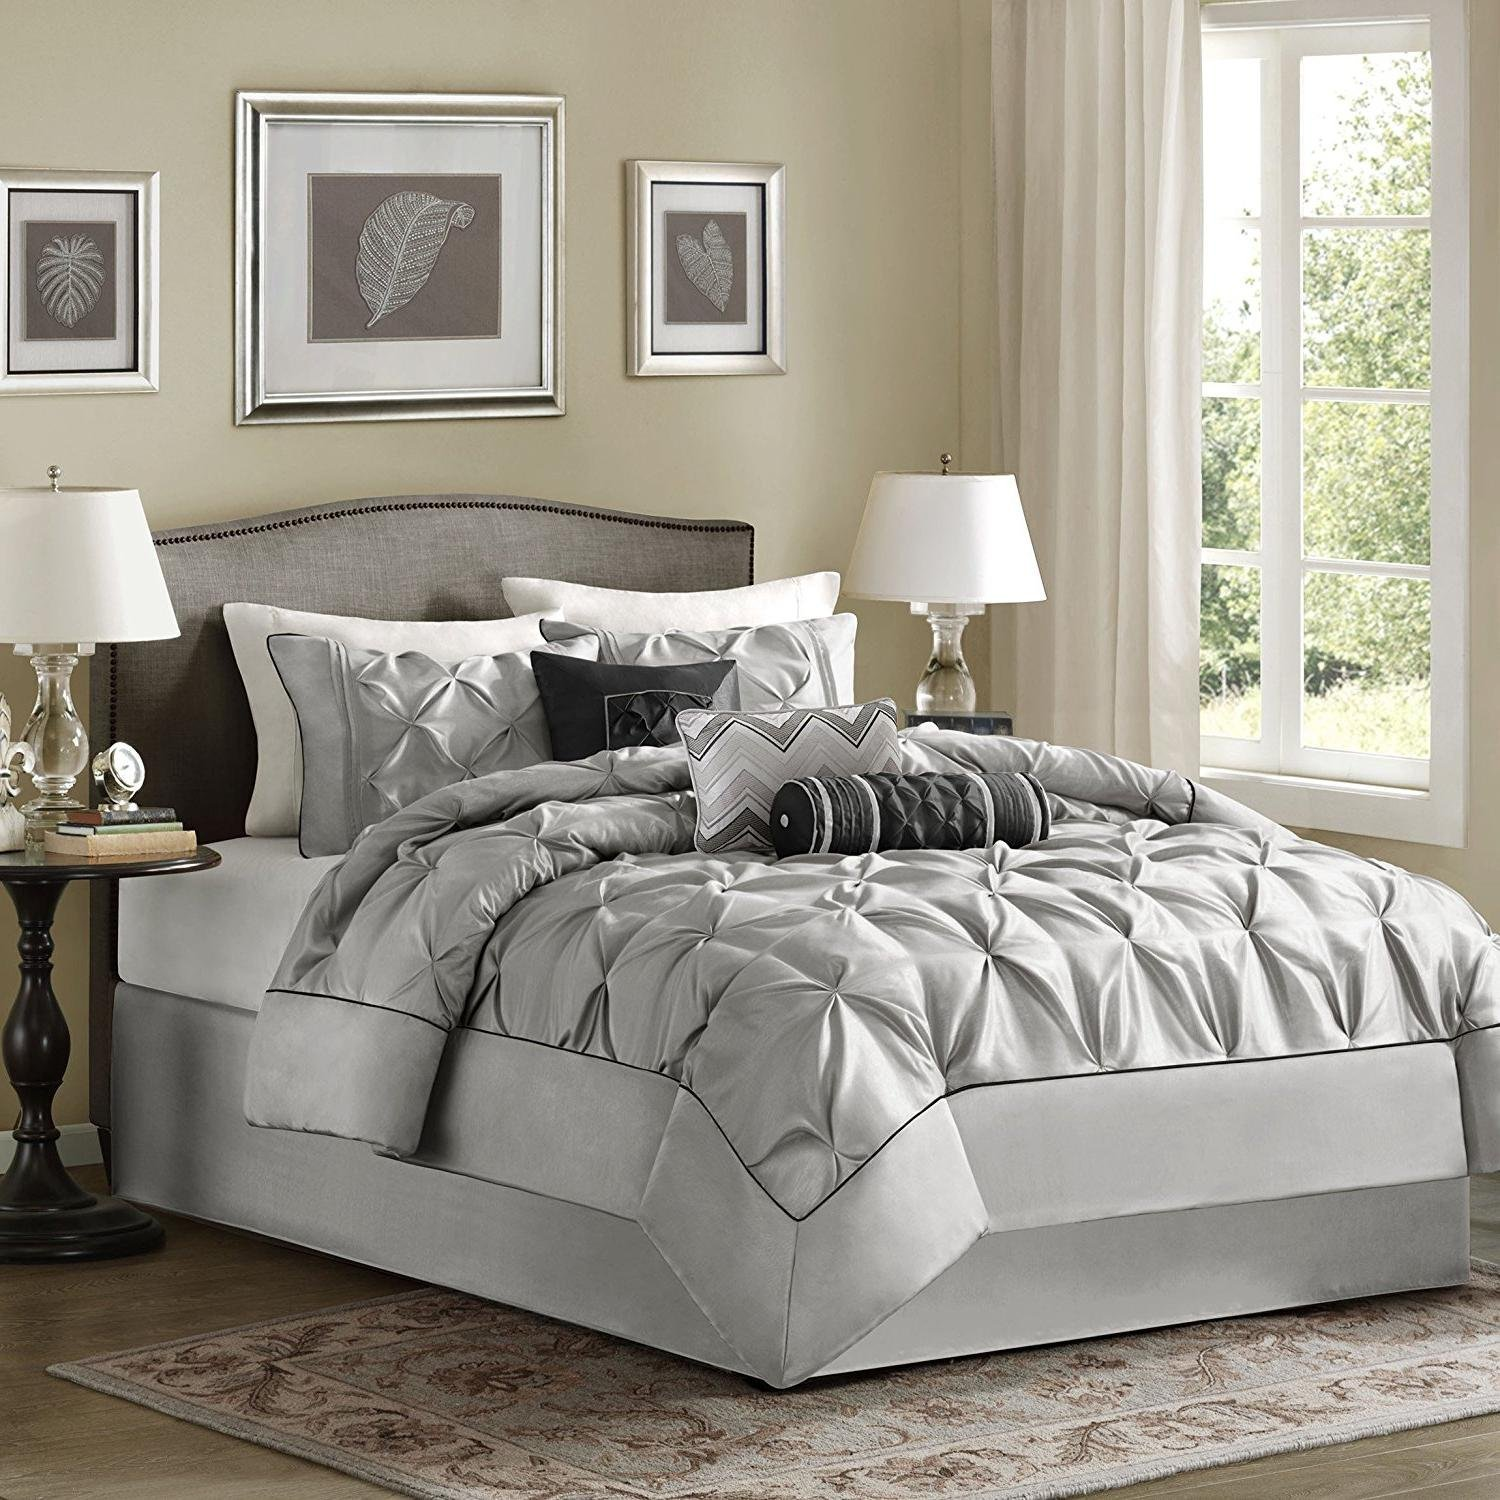 OSD 7pc Silver Grey Puckered Comforter Queen Set, Polyester Polyoni, Gray Pintuck Solid Color Adult Bedding Master Bedroom Modern Stylish Textured Tufted Pattern Classic Elegant Themed Traditional